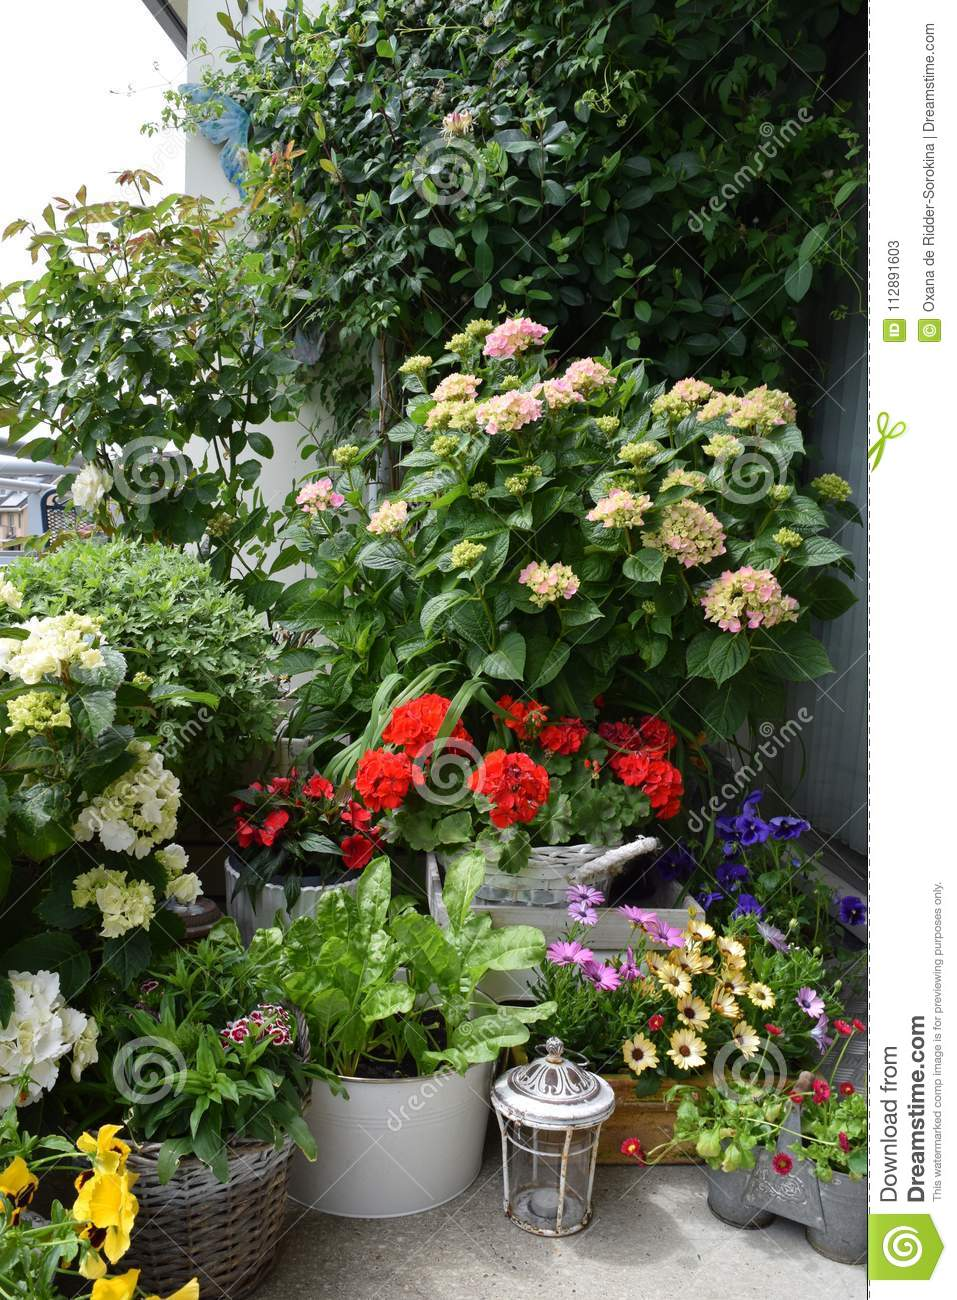 Cosiness with flowers and plants on the balcony